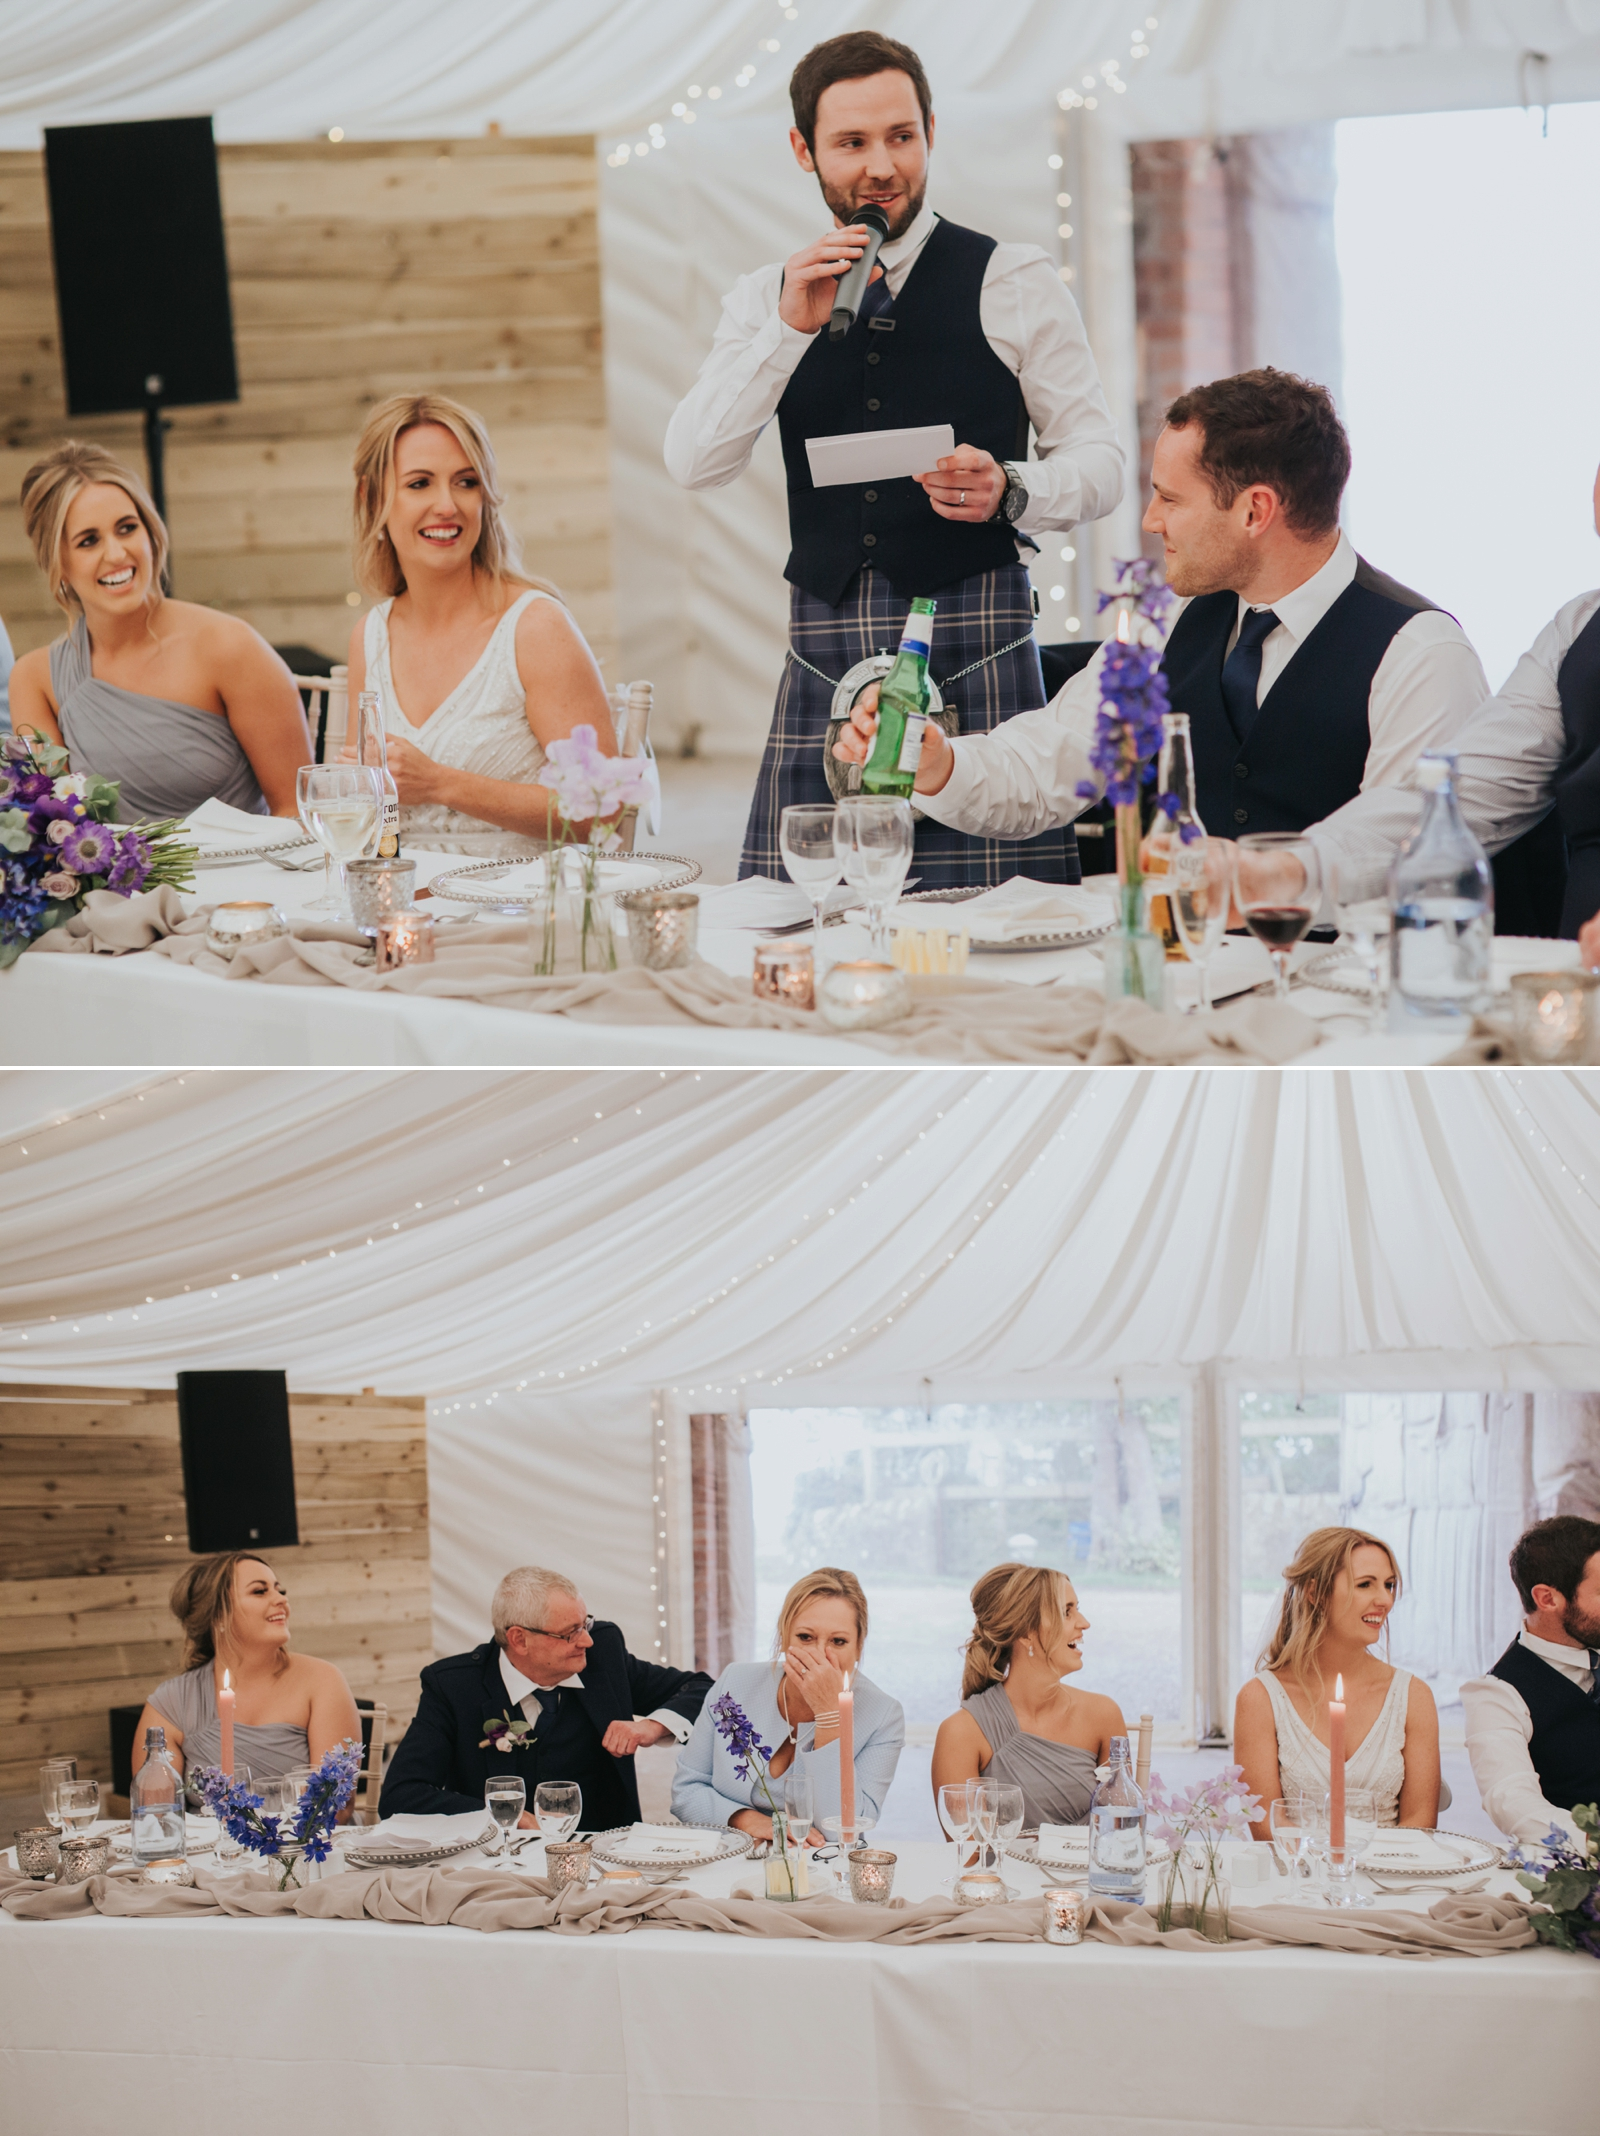 cow-shed-crail-rustic-wedding-gemma-andy-loraine-ross-photographygemma-andy-wedding-0792.jpg